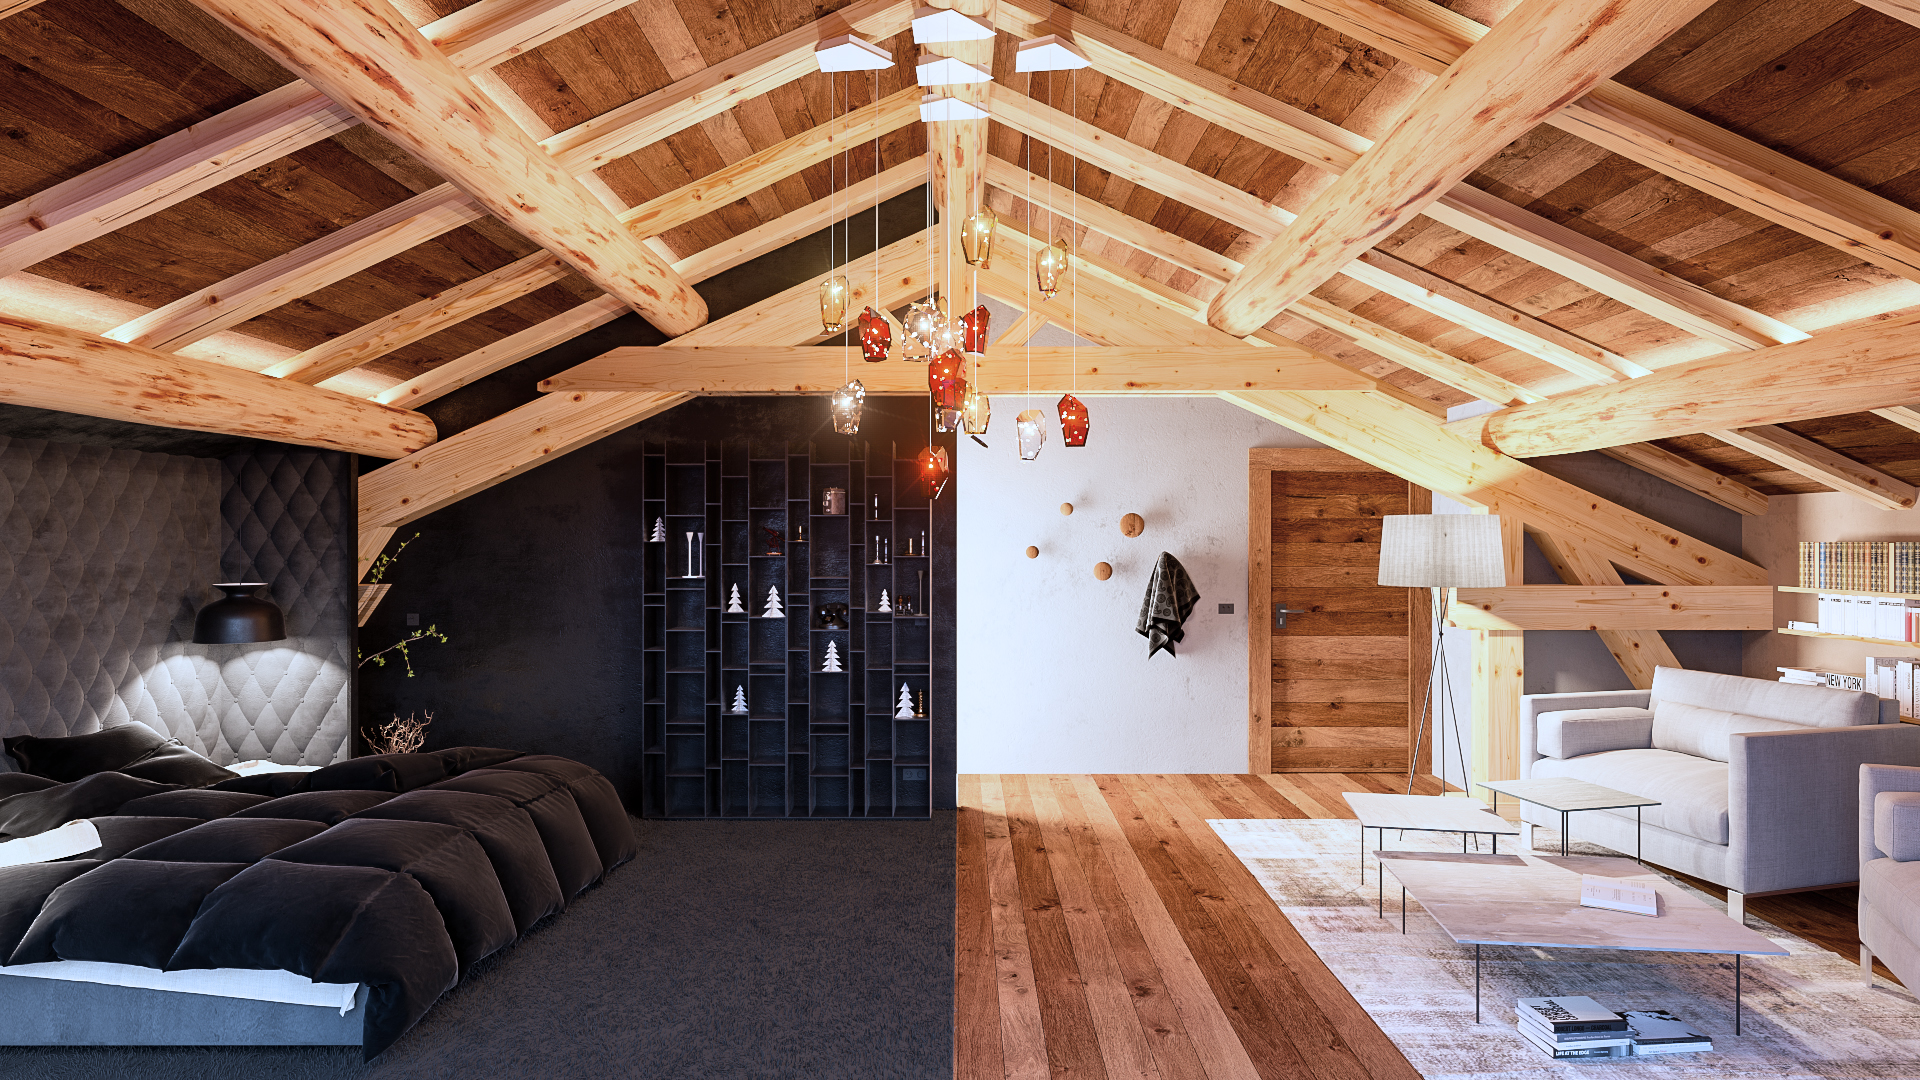 Am nagement int rieur d un chalet dans les alpes 2 for Site amenagement interieur